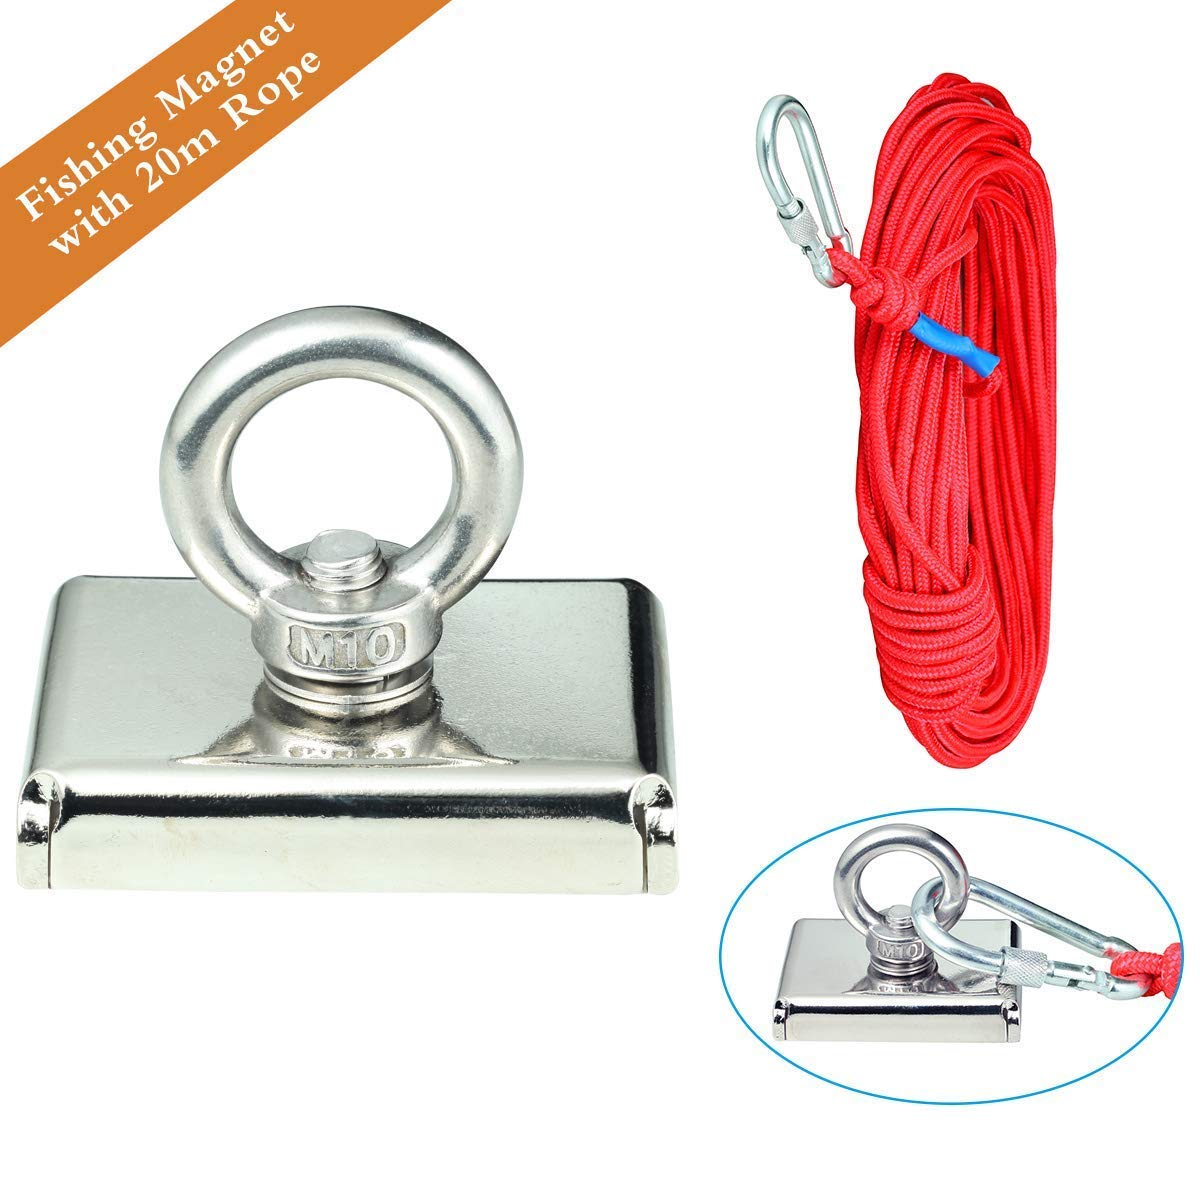 Powerful Fishing Magnets Set Wukong Model SNN75 242LBS Neodymium Magnets with Eyebolt Including Diameter 1/4'' 65.6 Feet Red Strong Braided Rope and Firm Security Lock. by Wukong